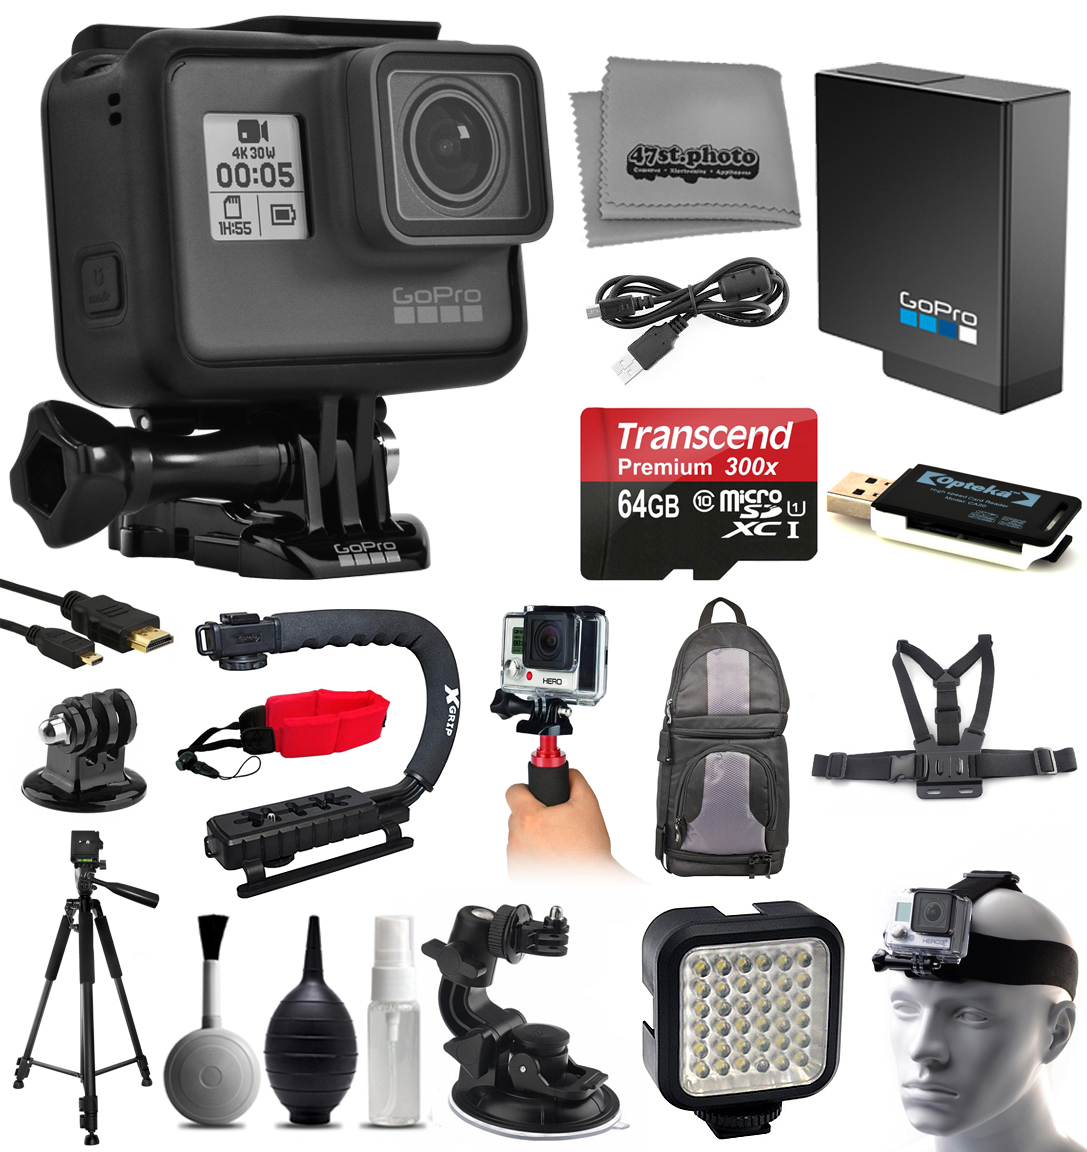 GoPro HERO5 Black Sports Action Camera with 64GB SD + Card Reader + Backpack + Chest Harness + Action Handle + Tripod